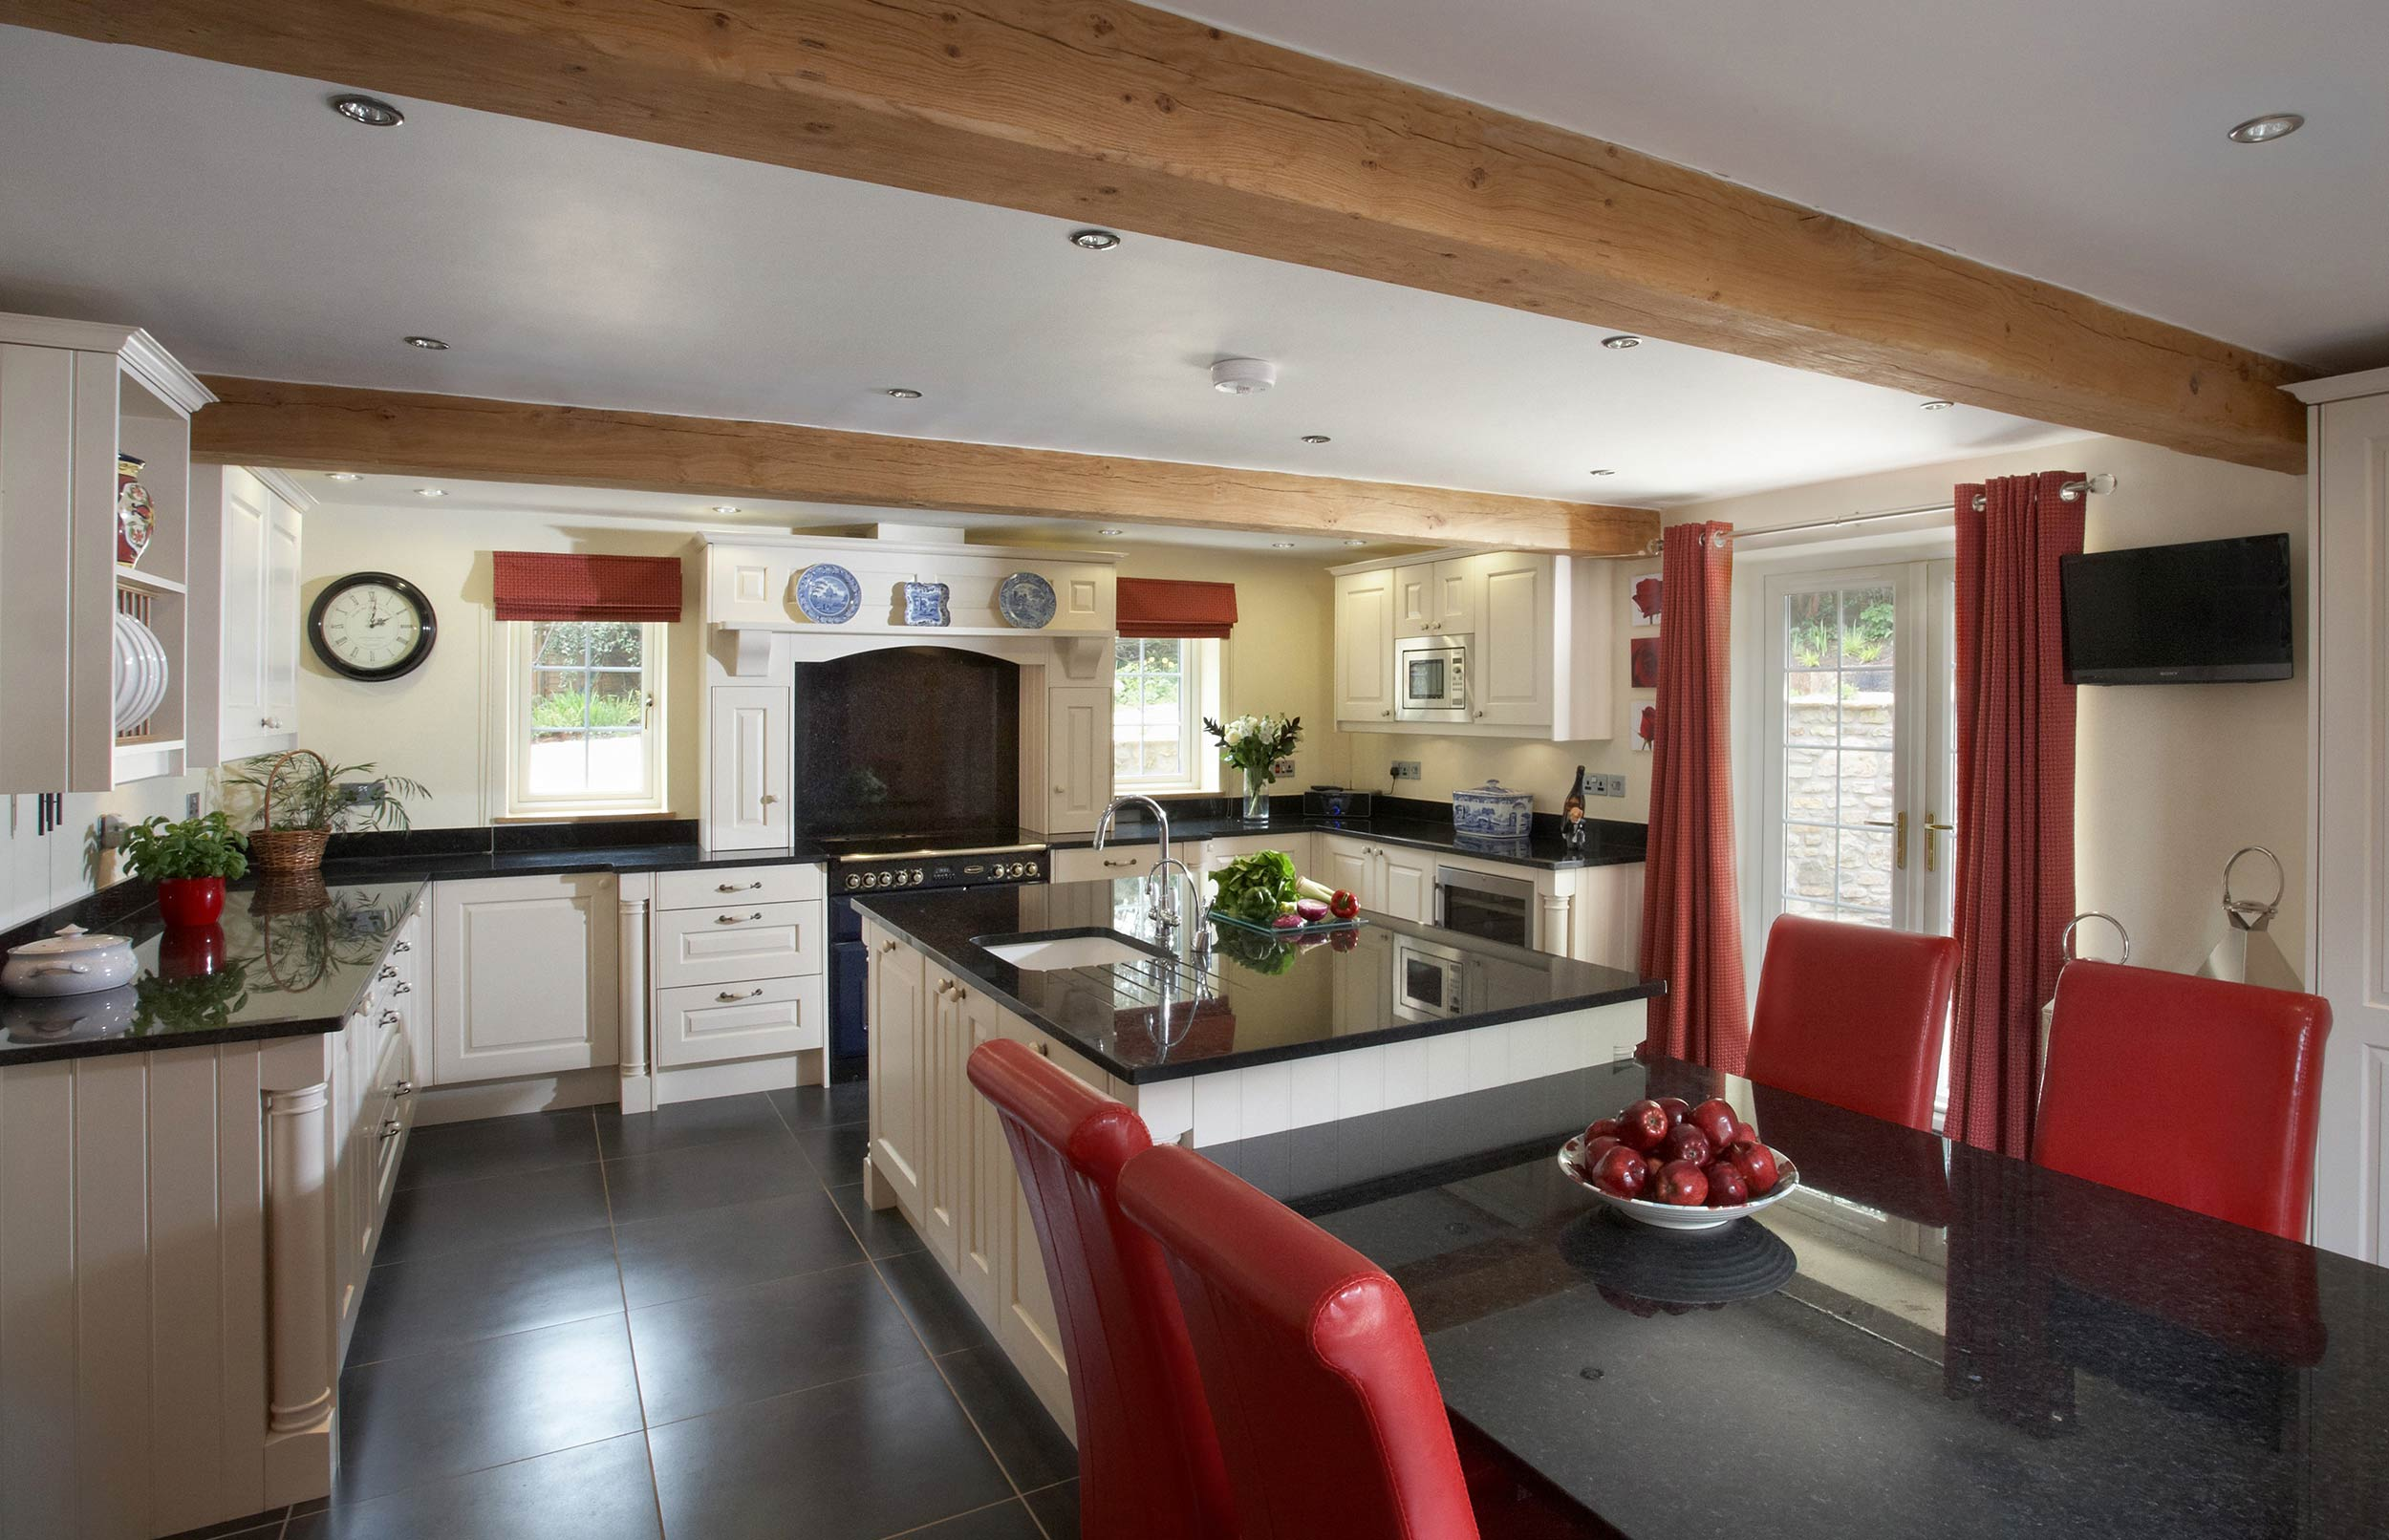 Stylish Bespoke Kitchen with Classic Finish